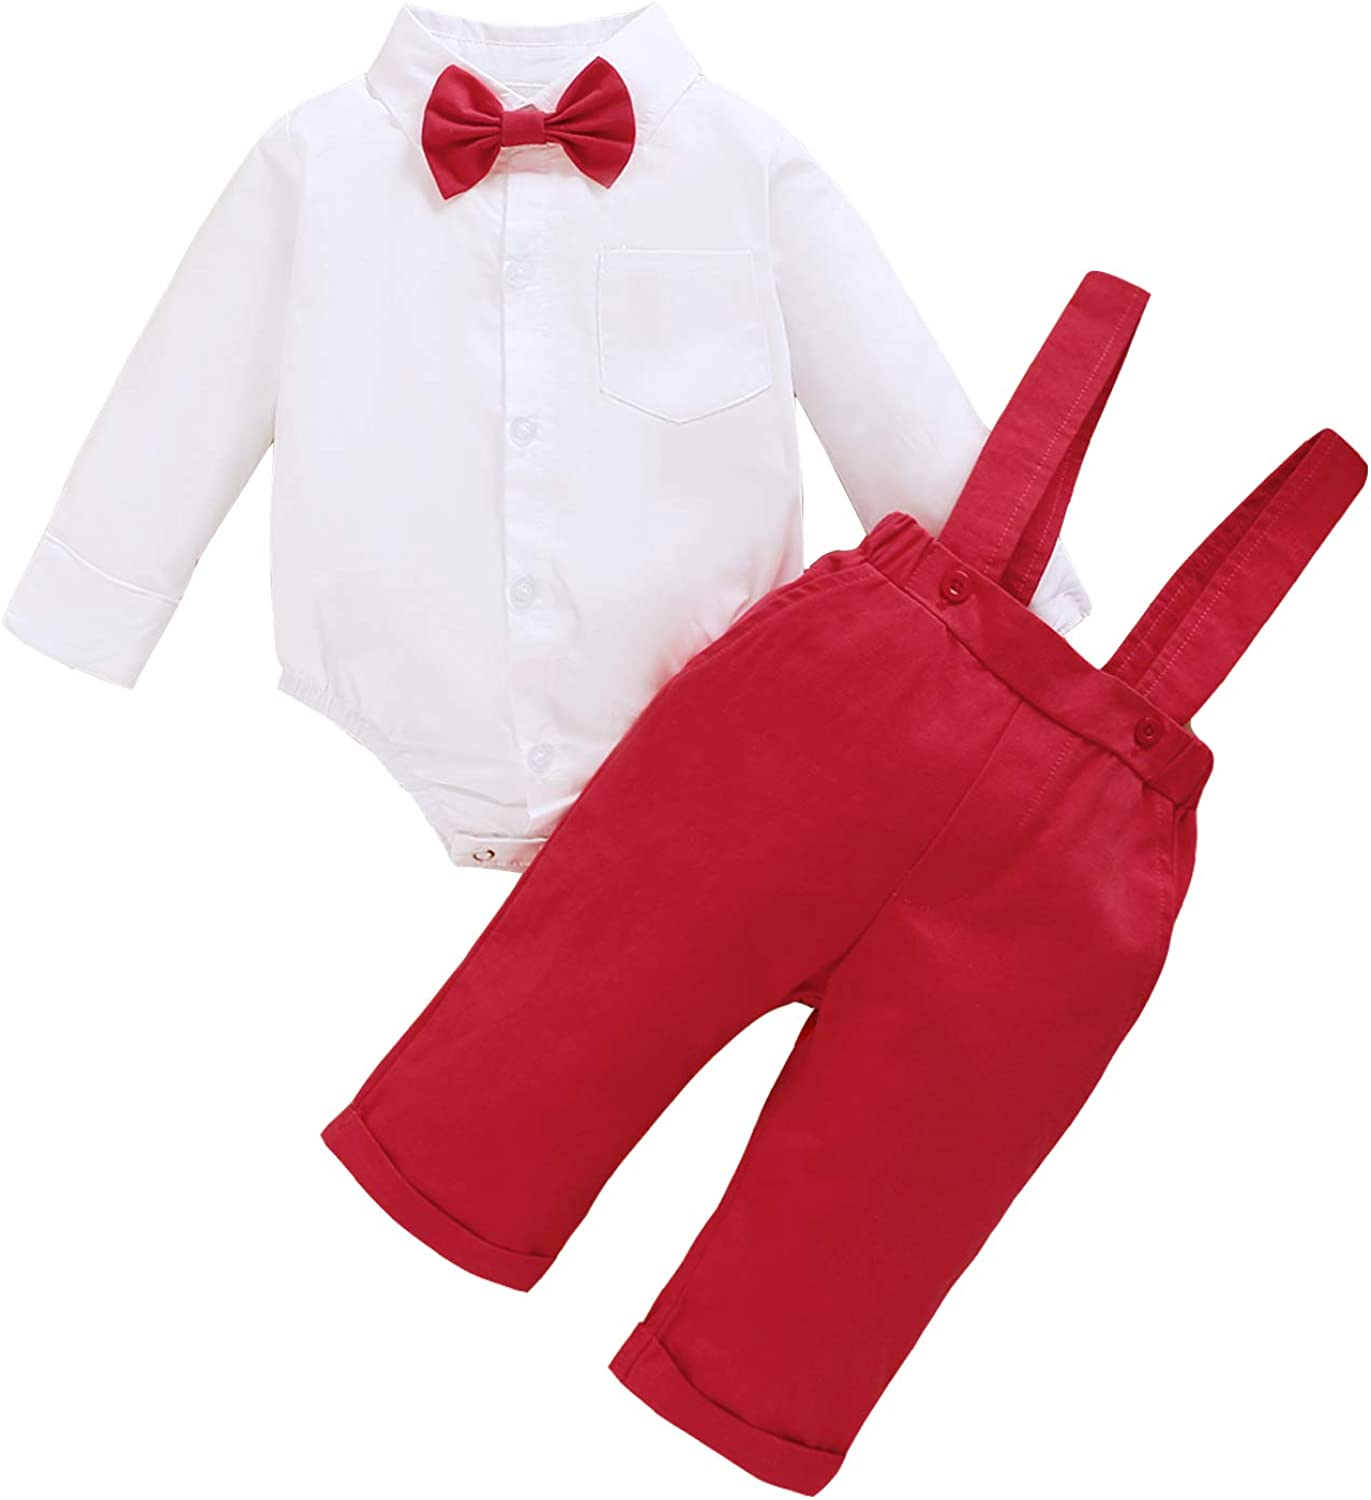 ROMPERINBOX Baby Boy Red Gentleman Outfits Toddler Short Long Sleeve  Shirt+Bowtie+Bib Pants Infant Summer Clothing Set